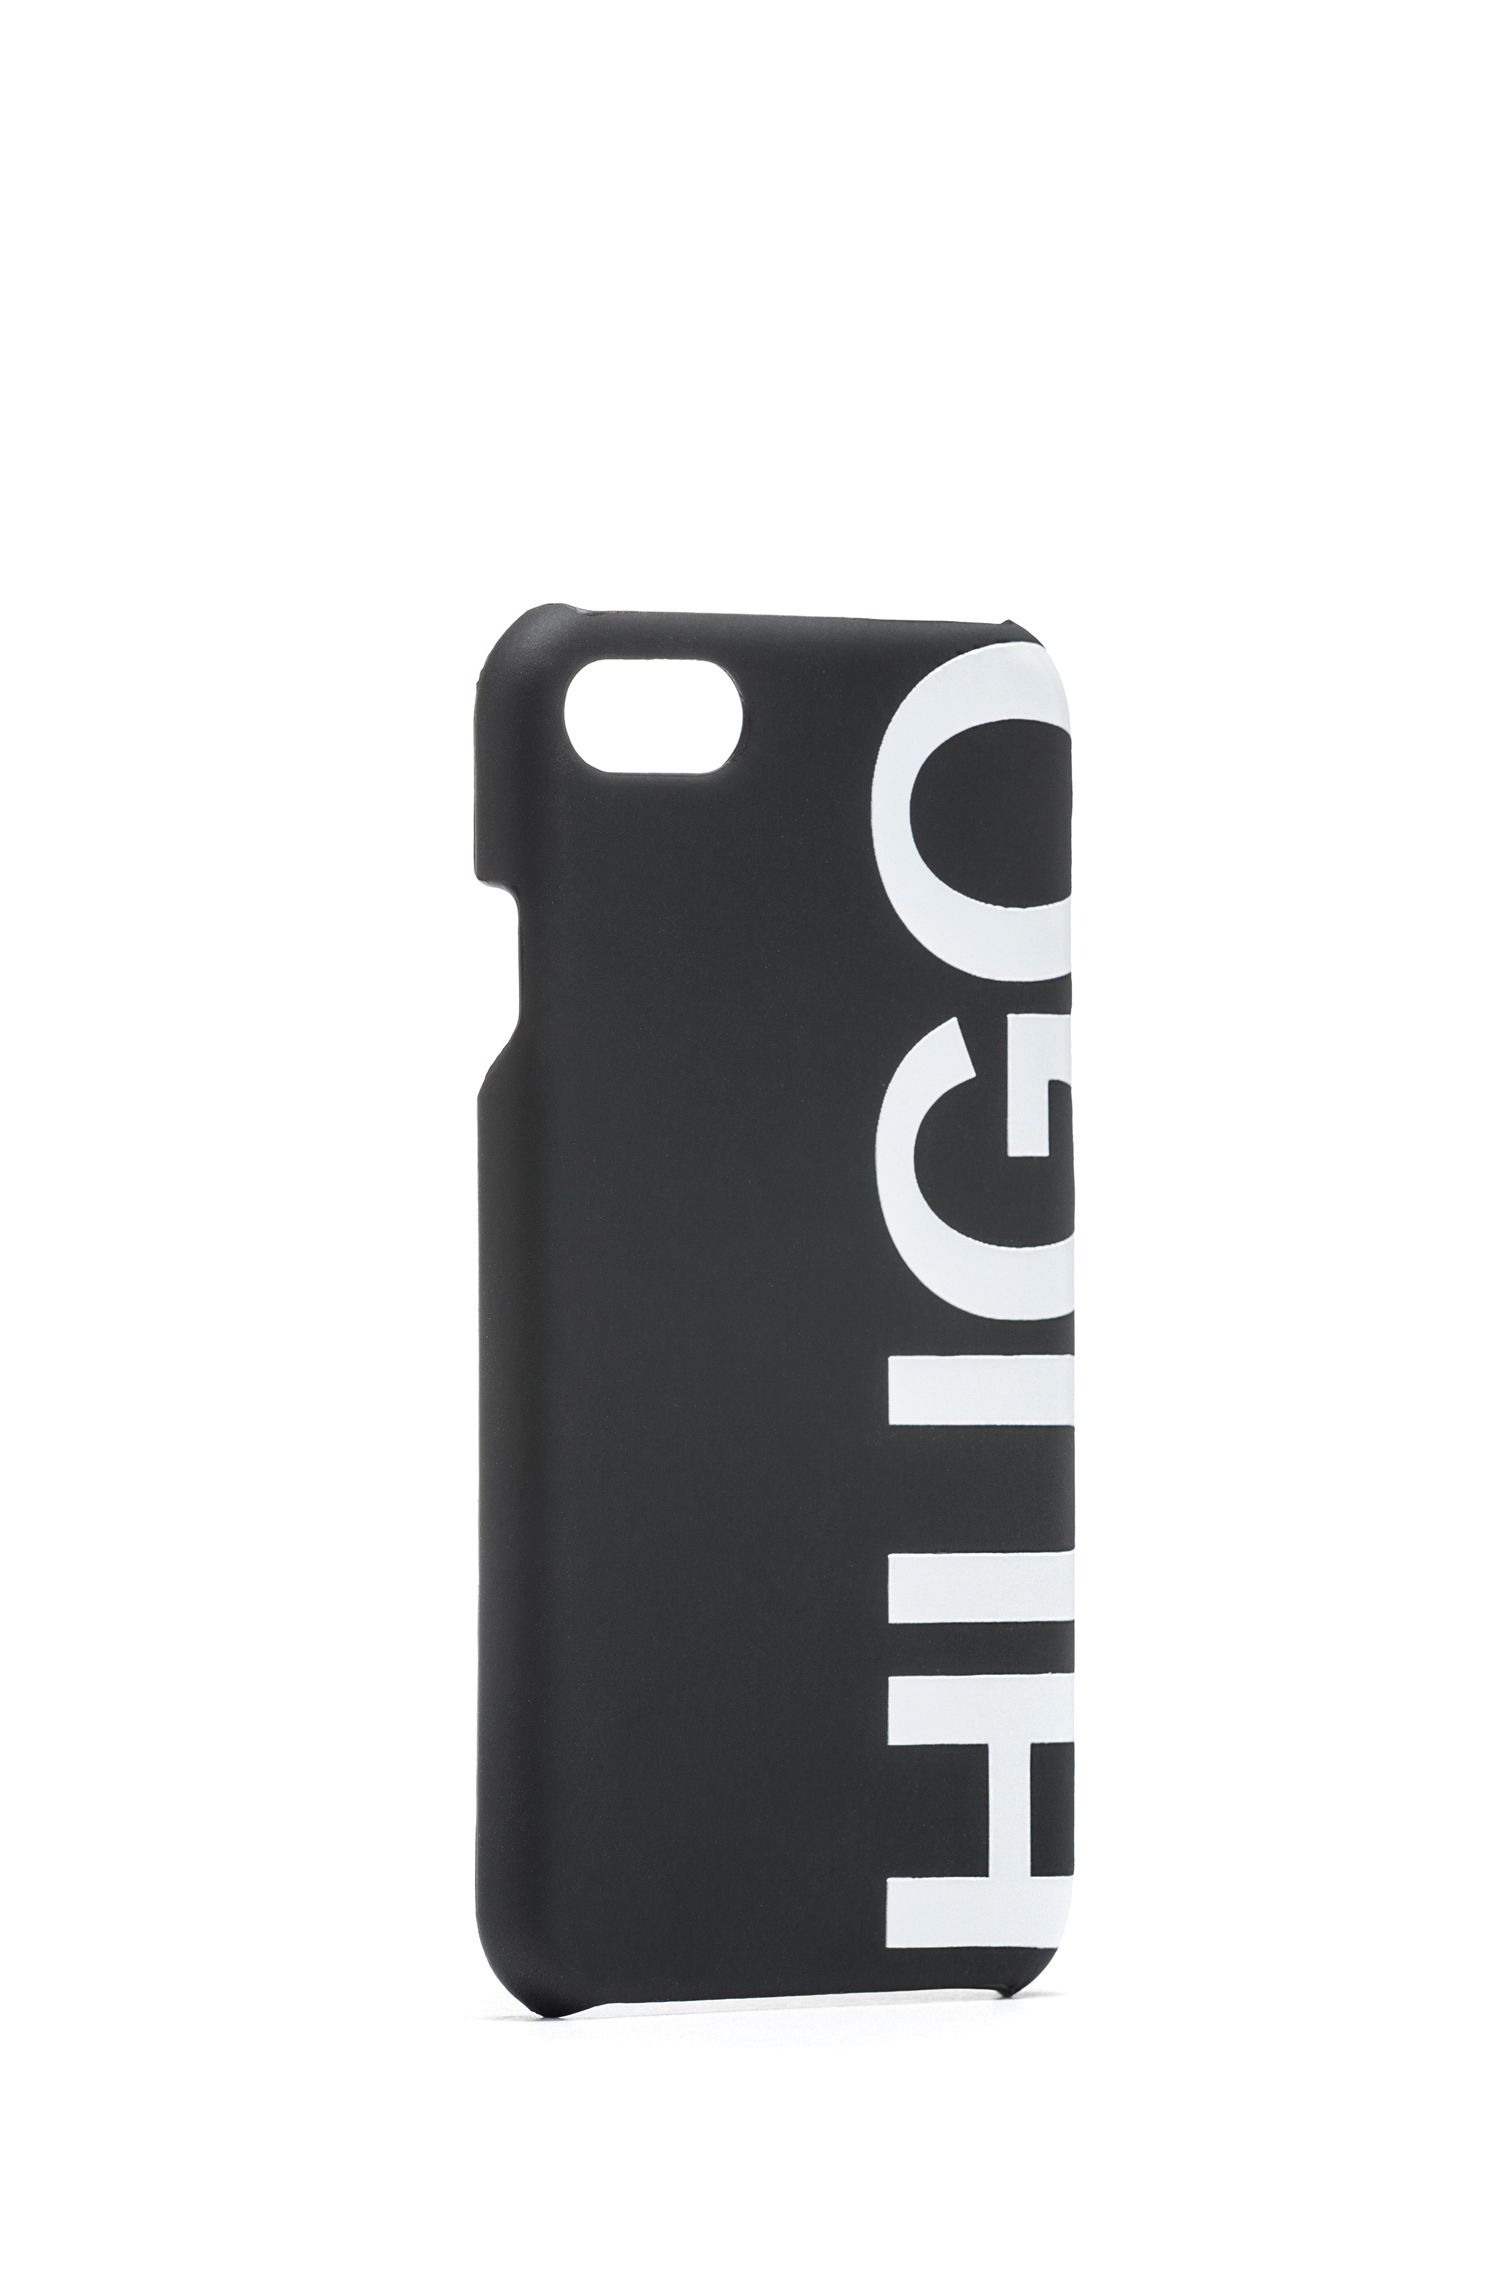 iPhone 8 smartphone case with cropped logo, Black